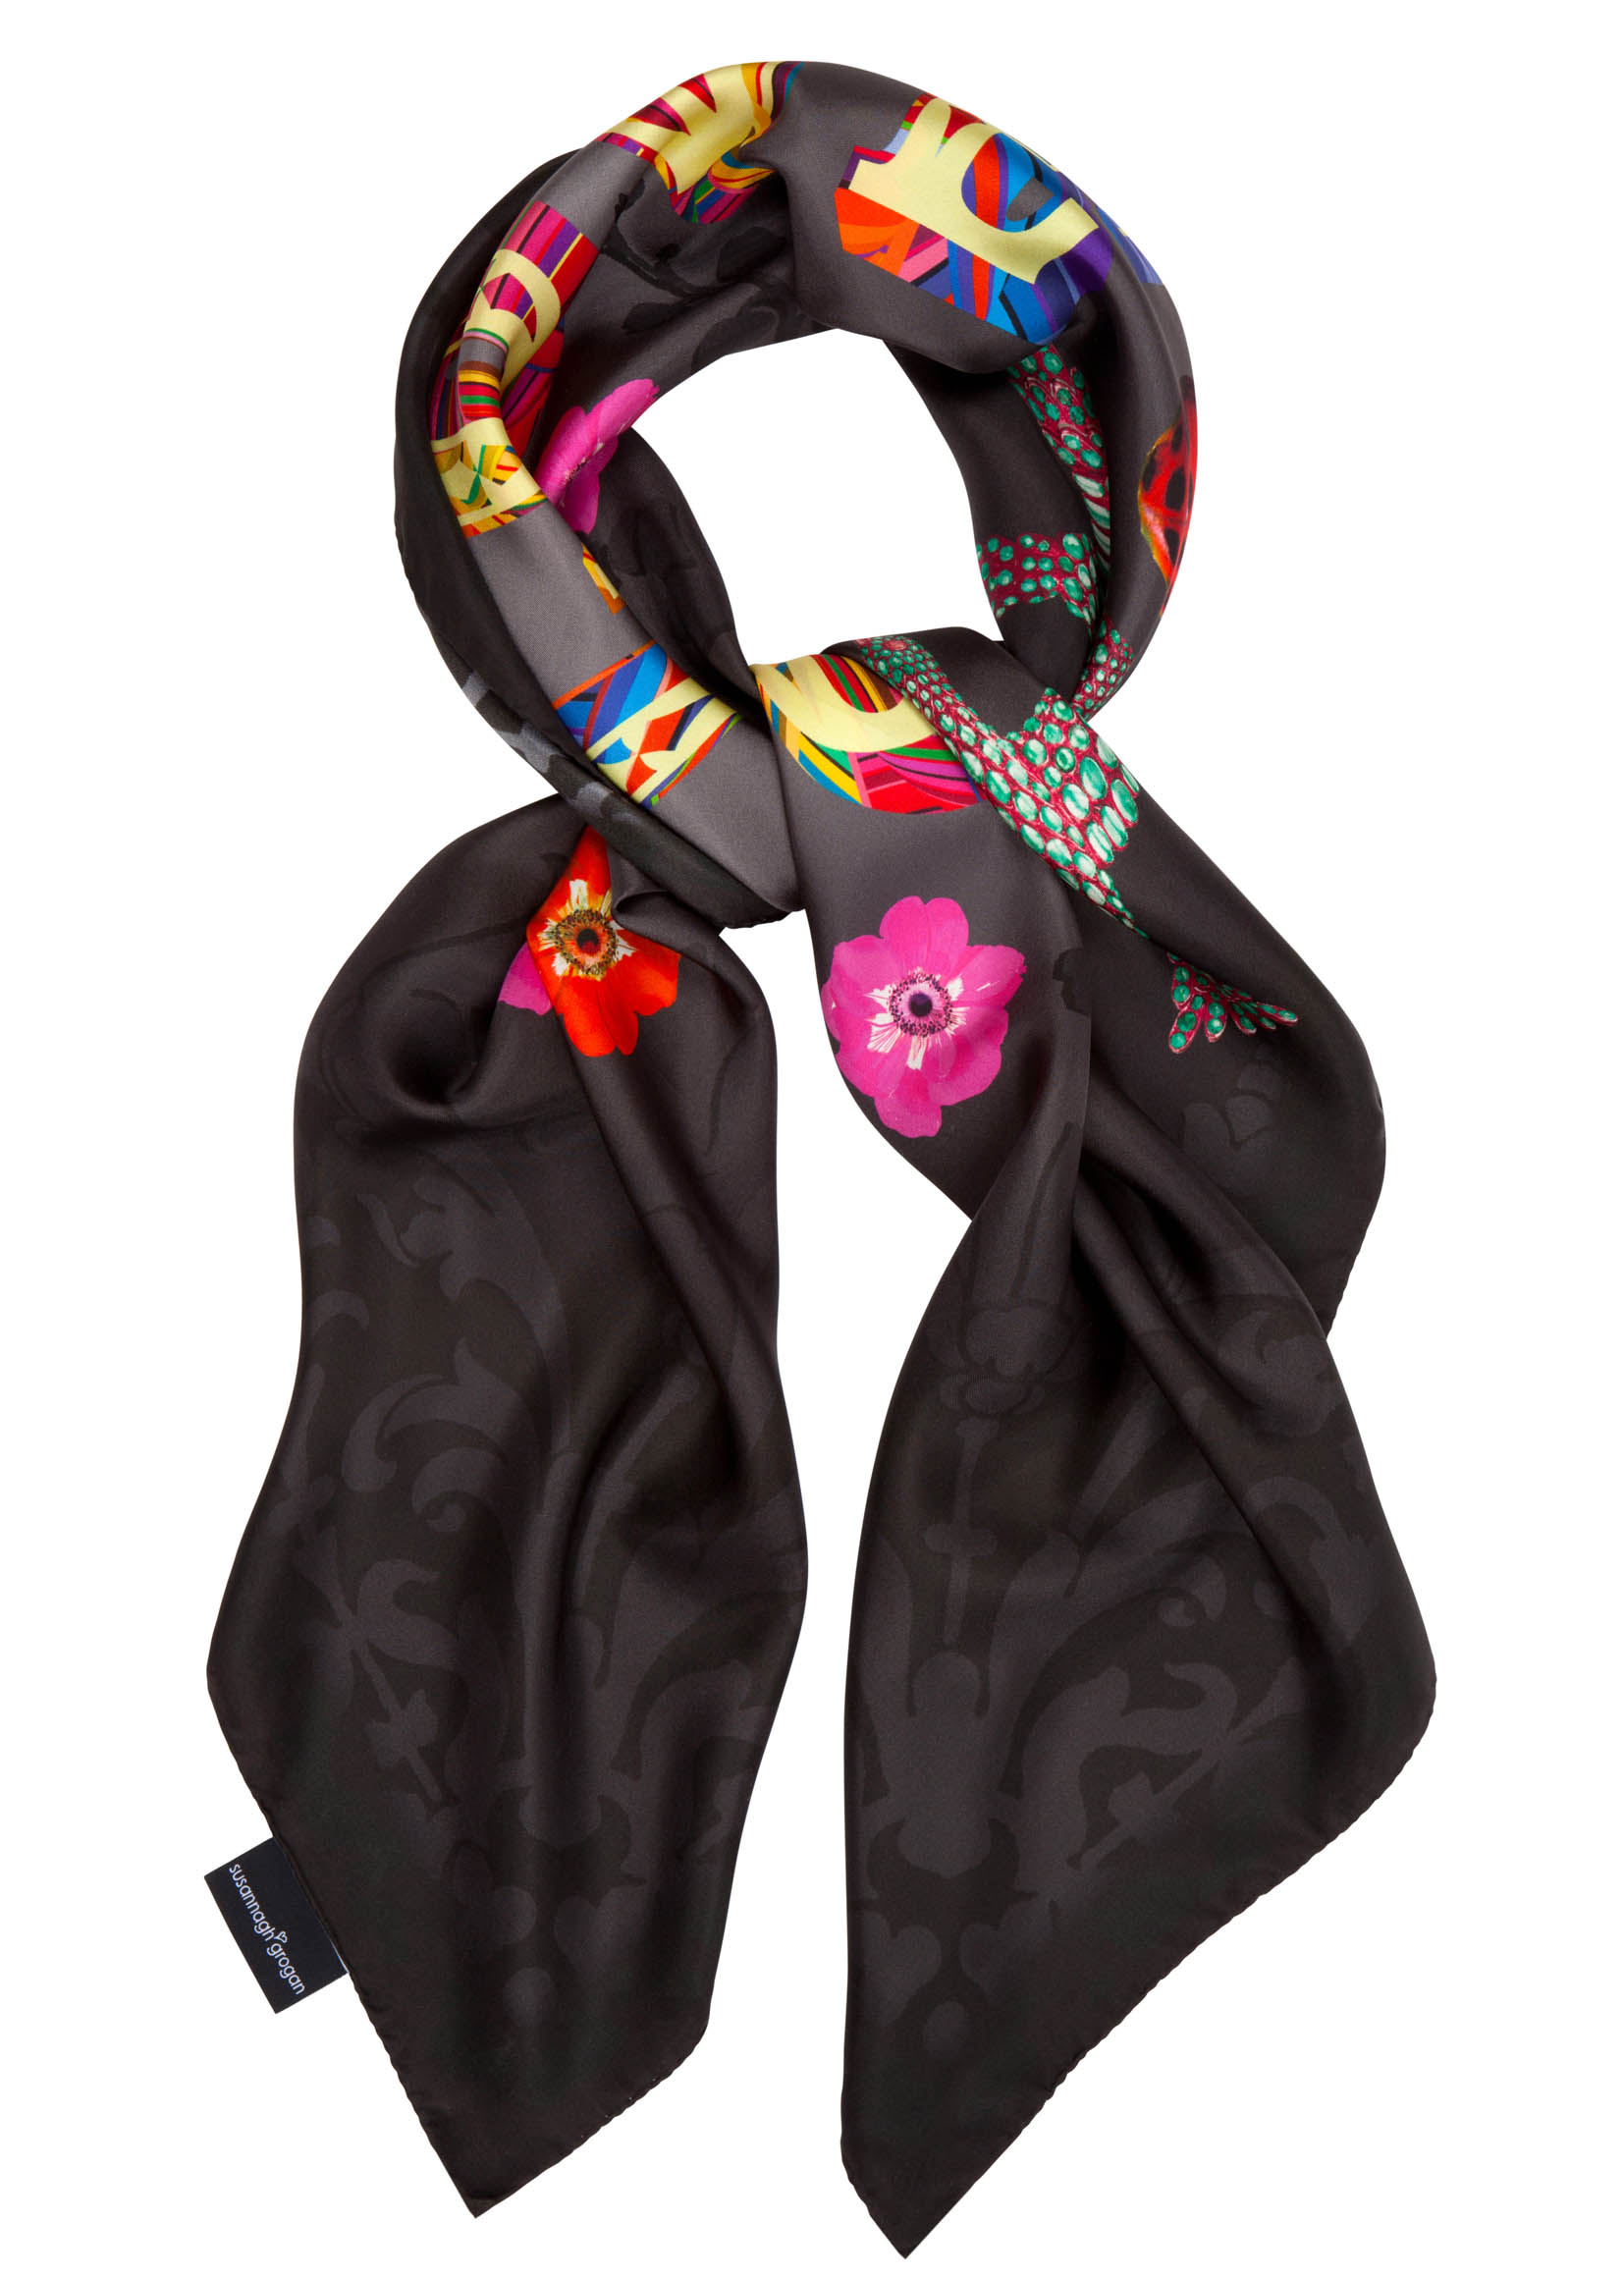 Love XL Scarf | It's back in black